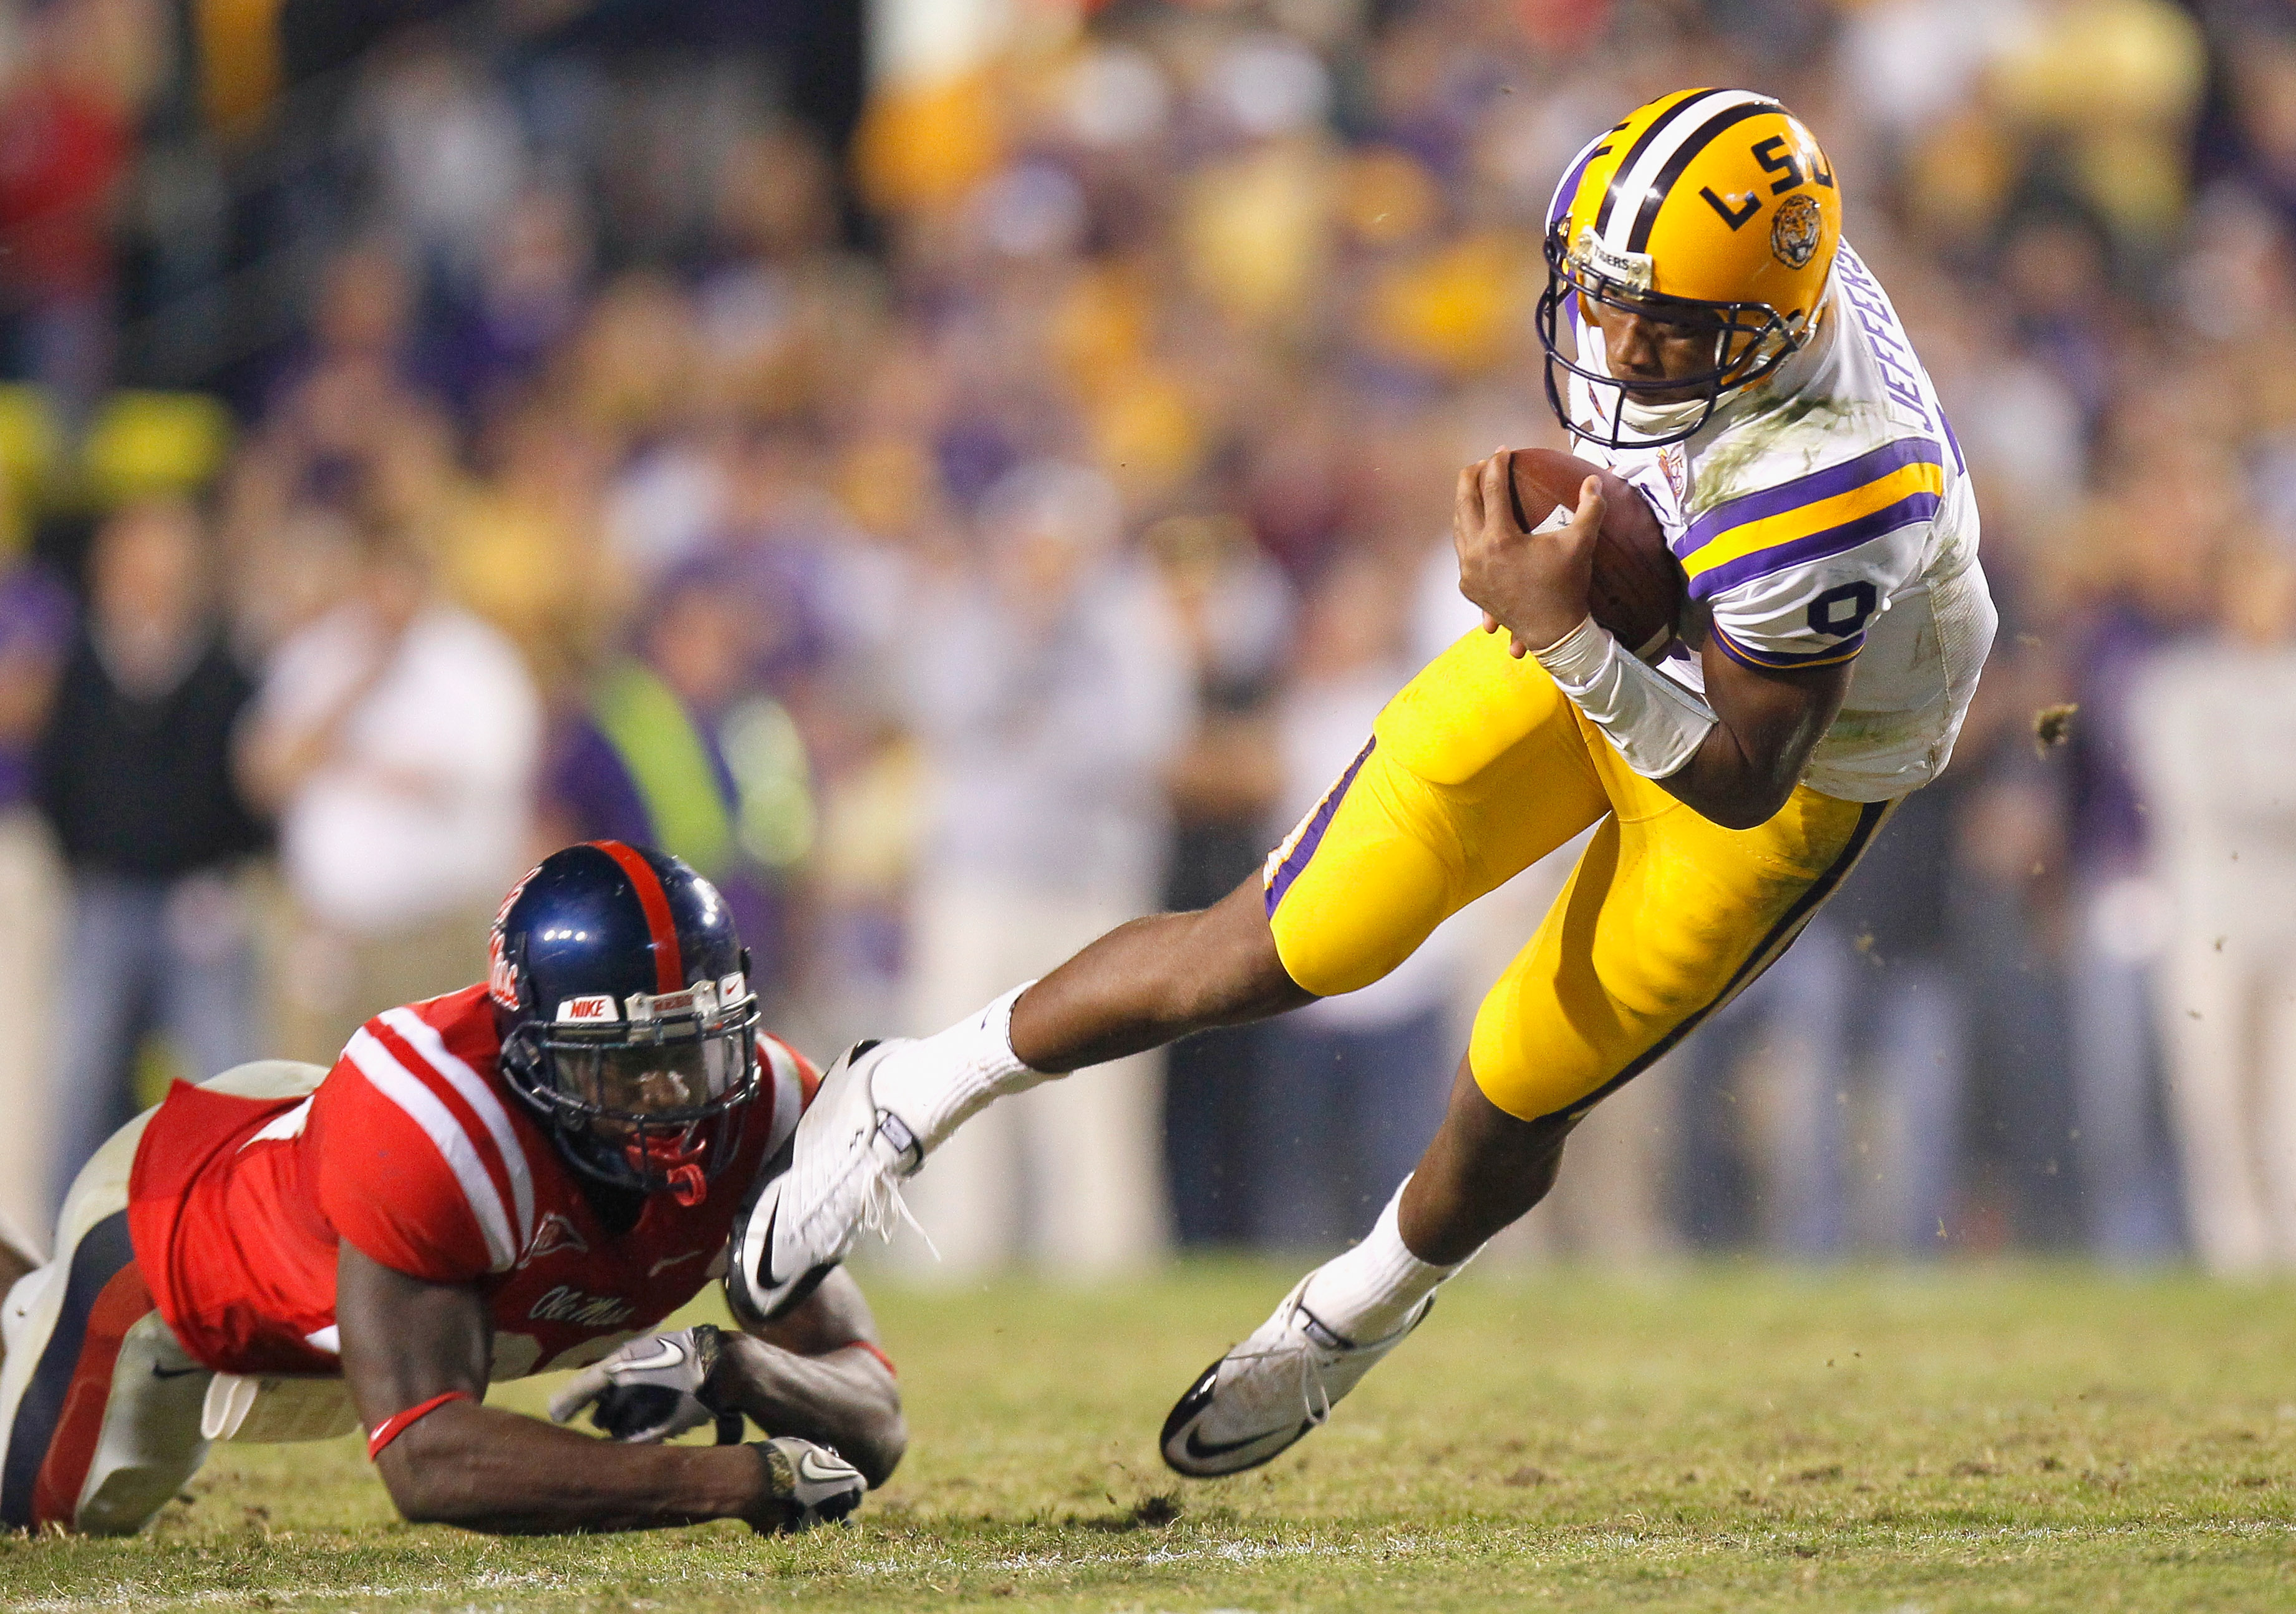 BATON ROUGE, LA - NOVEMBER 20:  Quarterback Jordan Jefferson #9 of the Louisiana State University Tigers is tripped up by Johnny Brown #20 of the Ole Miss Rebels at Tiger Stadium on November 20, 2010 in Baton Rouge, Louisiana.  (Photo by Kevin C. Cox/Gett